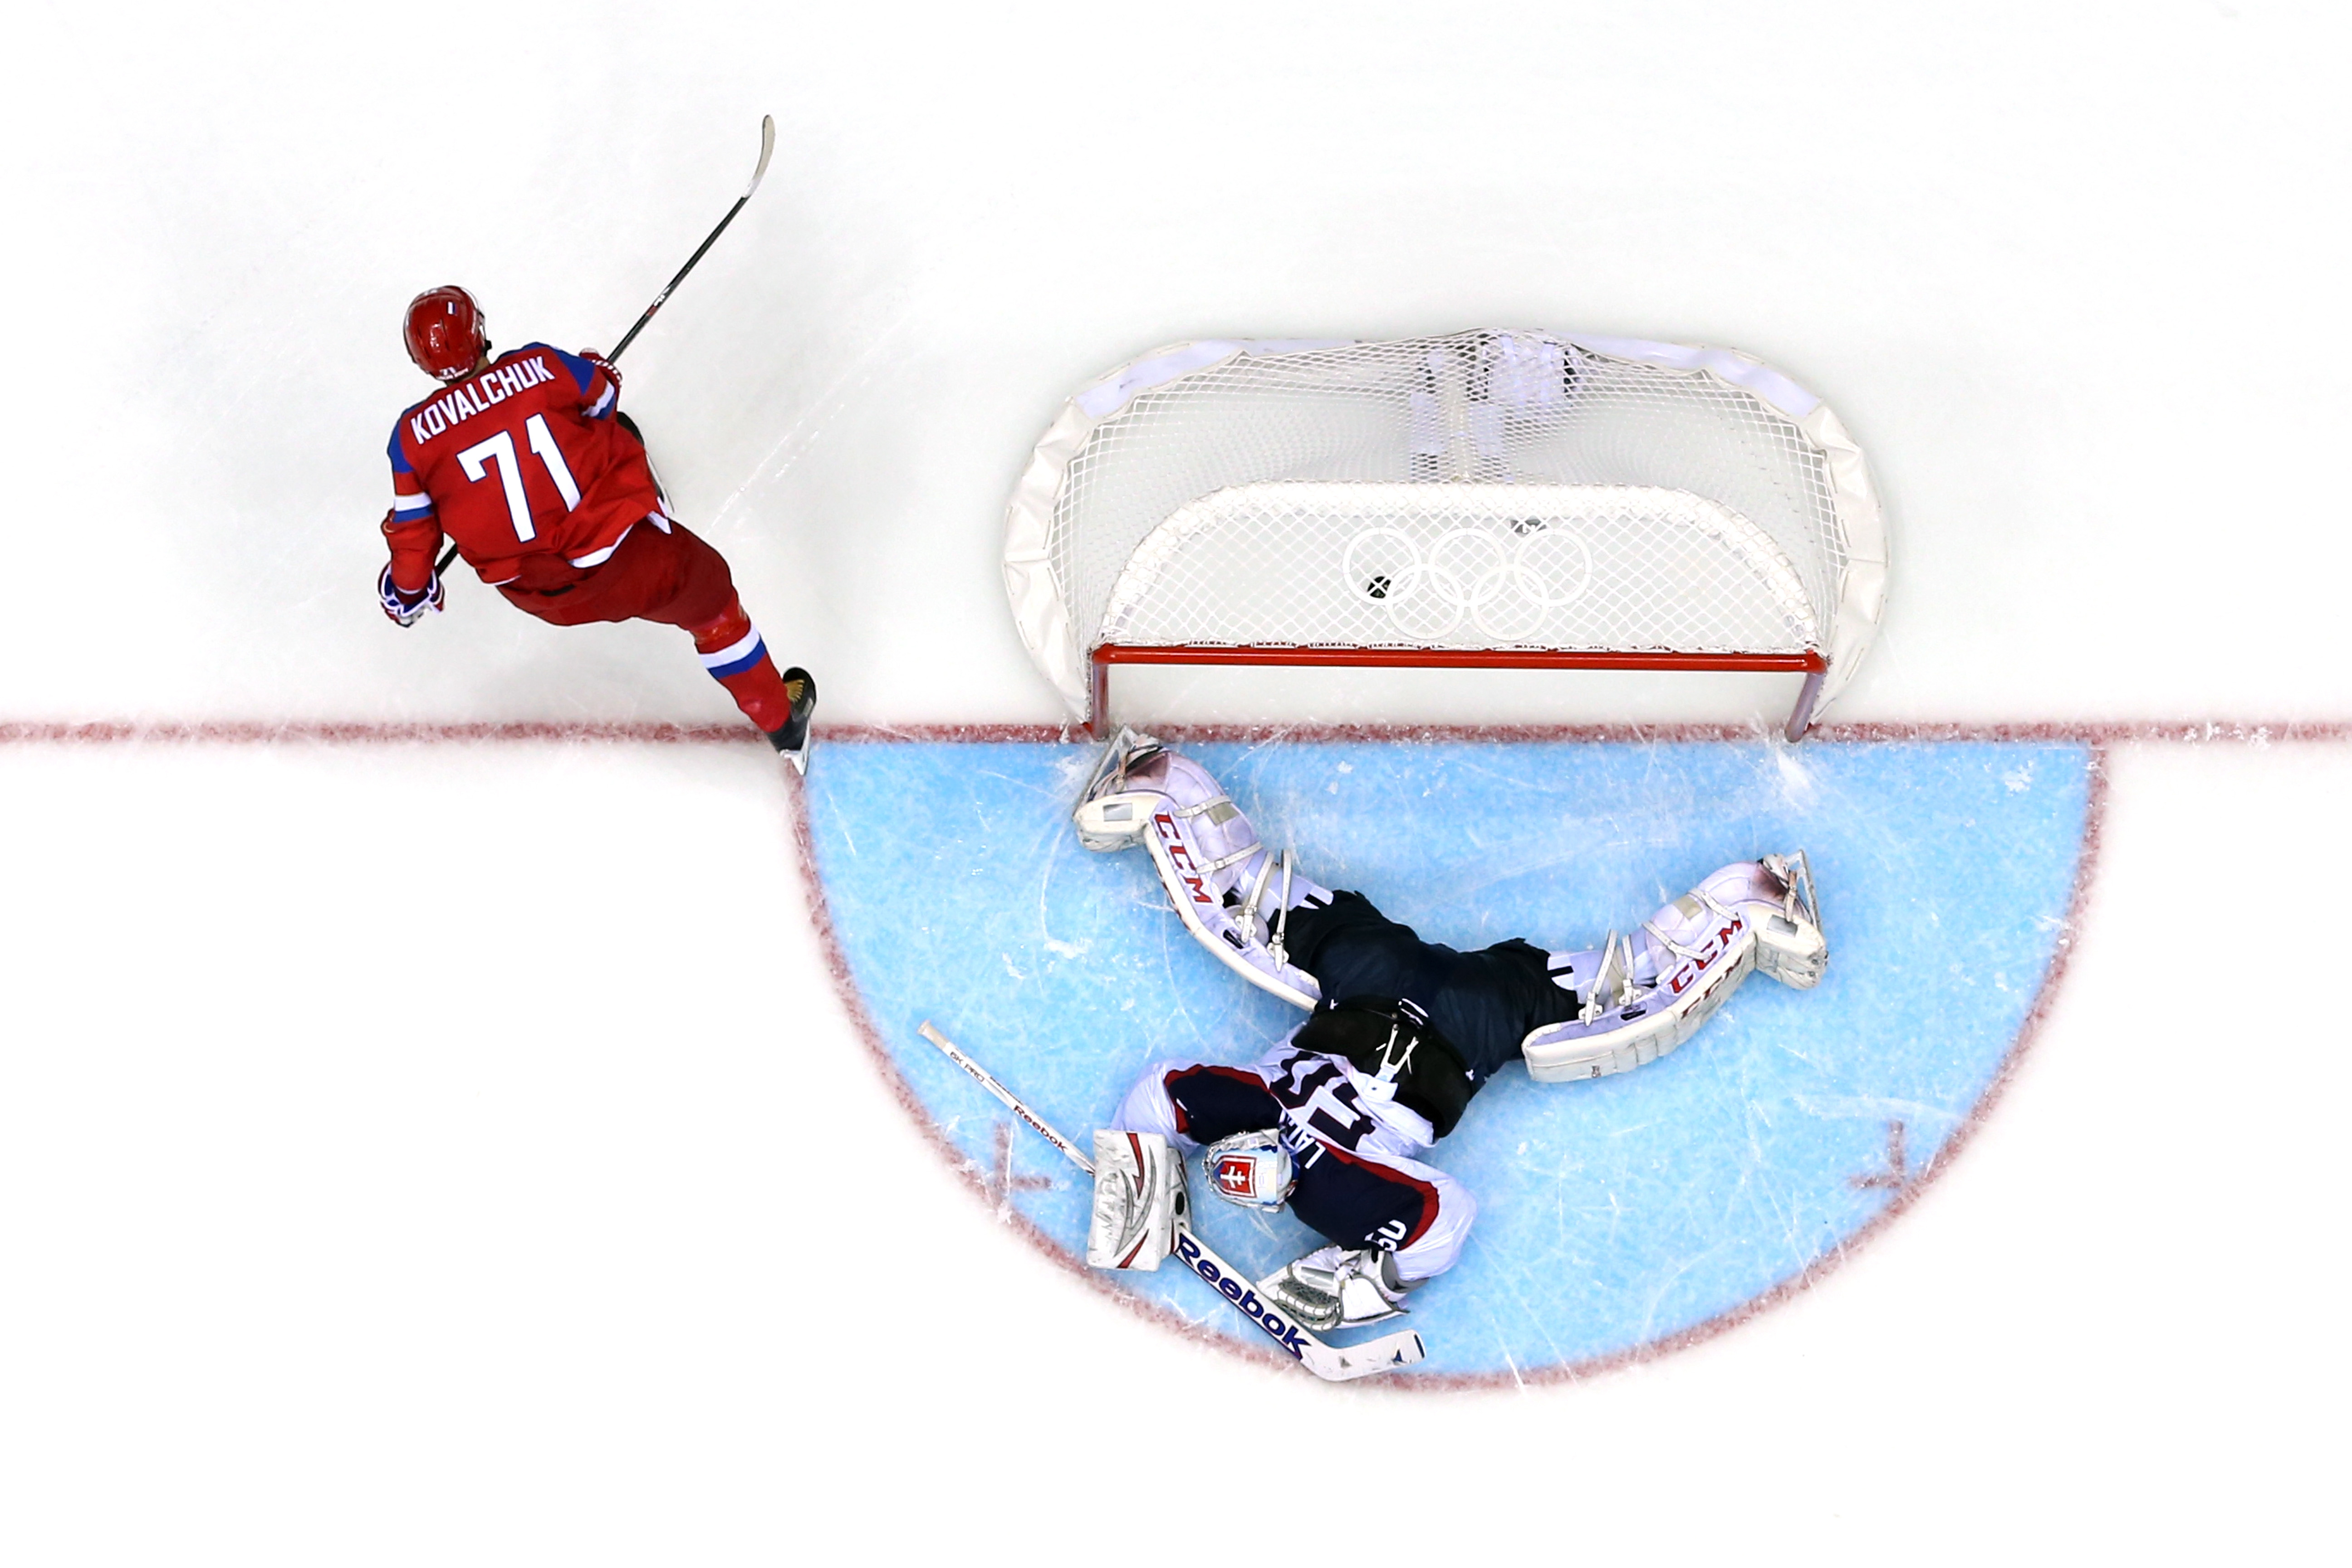 Ilya Kovalchuk #71 of Russia scores a winning goal in a shoot against Jan Laco #50 of Slovakia during the Men's Ice Hockey Preliminary Round Group A game during the Sochi 2014 Winter Olympics at Bolshoy Ice Dome on February 16, 2014 in Sochi, Russia.